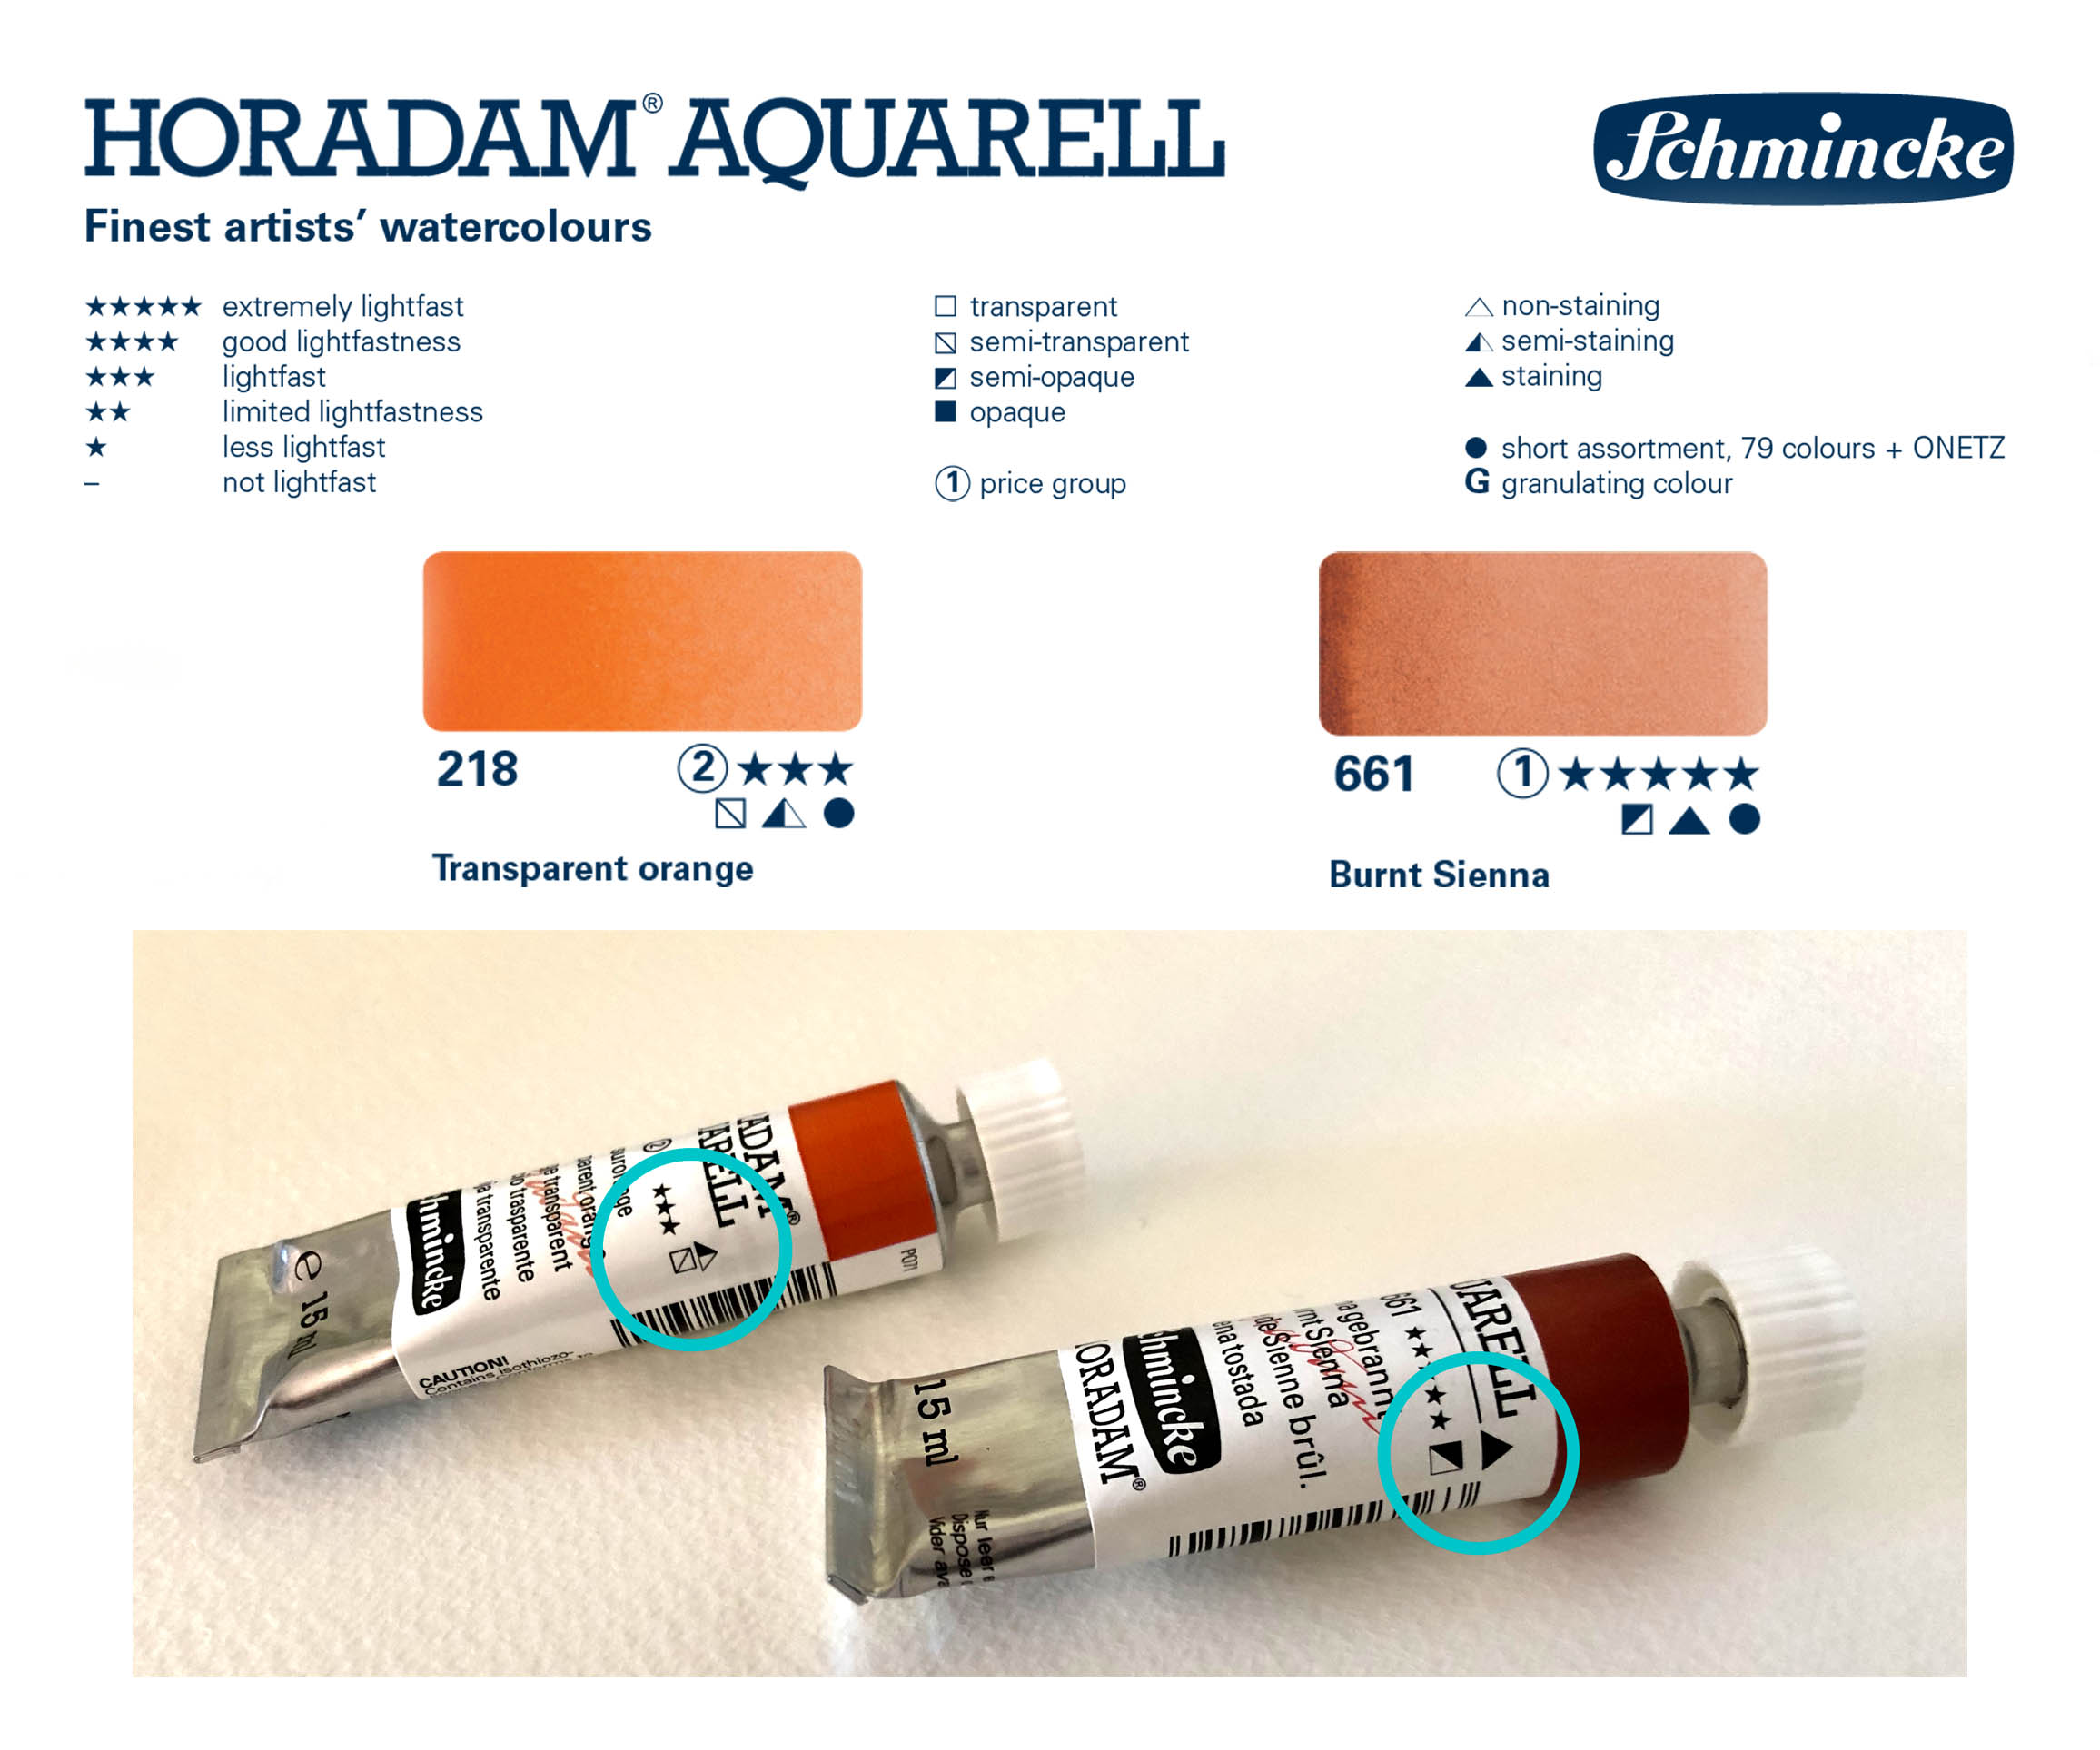 understanding the labels on the watercolour tubes and pans